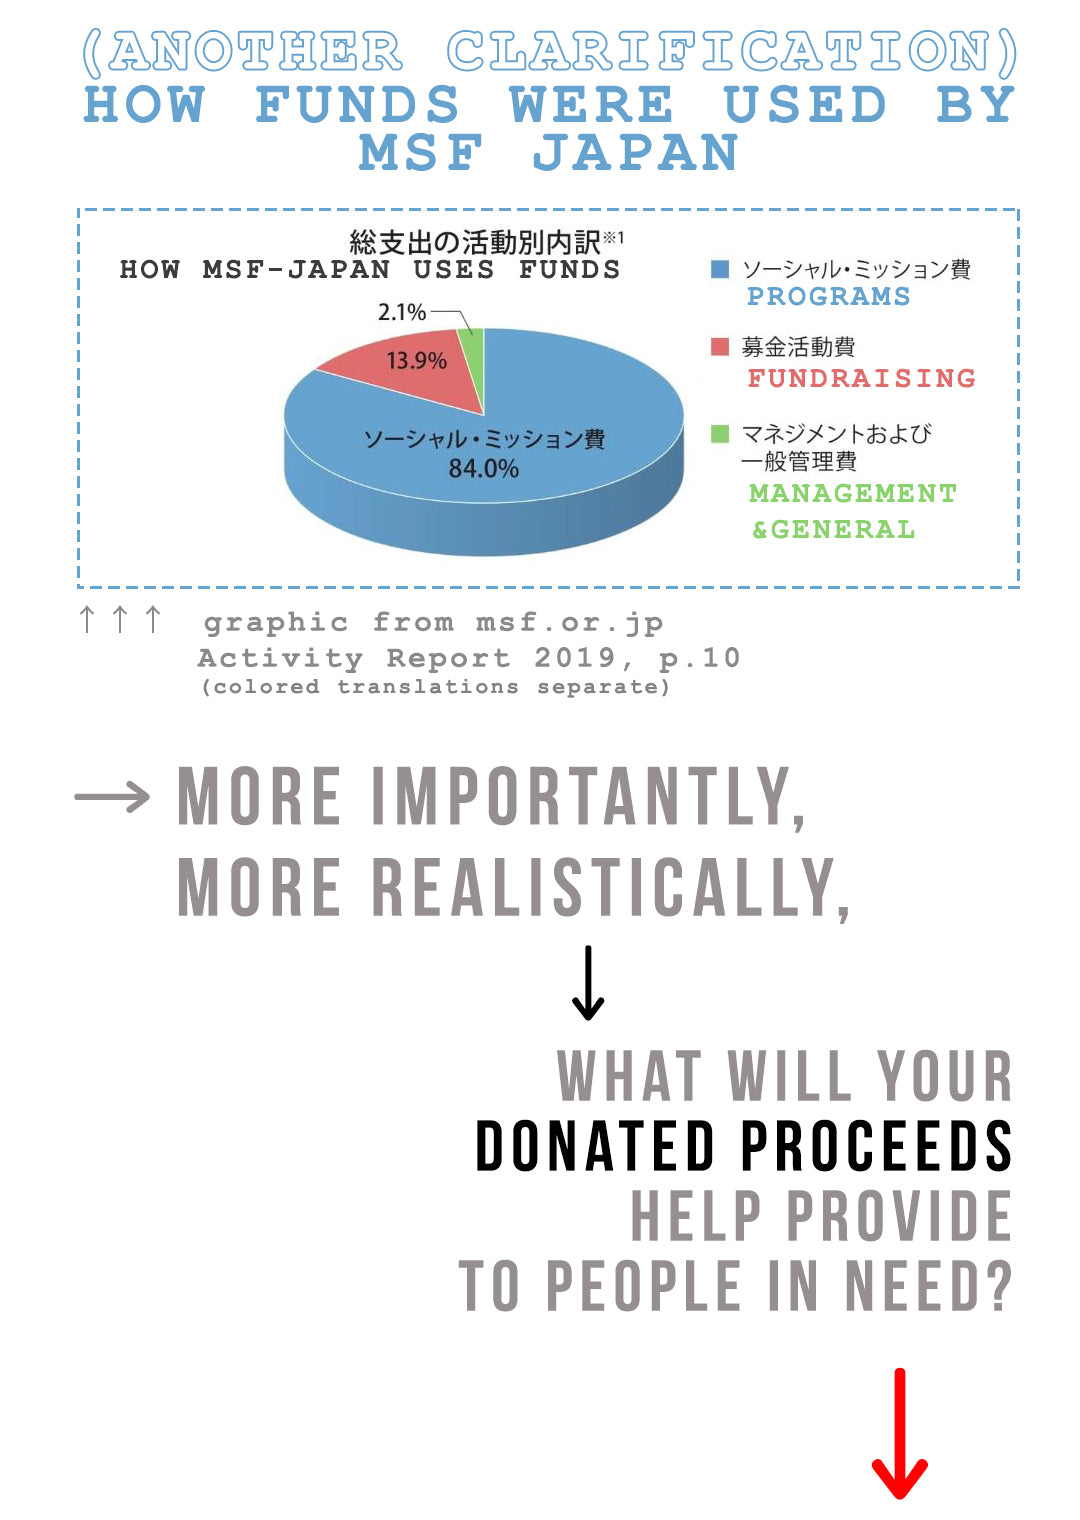 7: a clarification on how MSF-Japan uses their funds